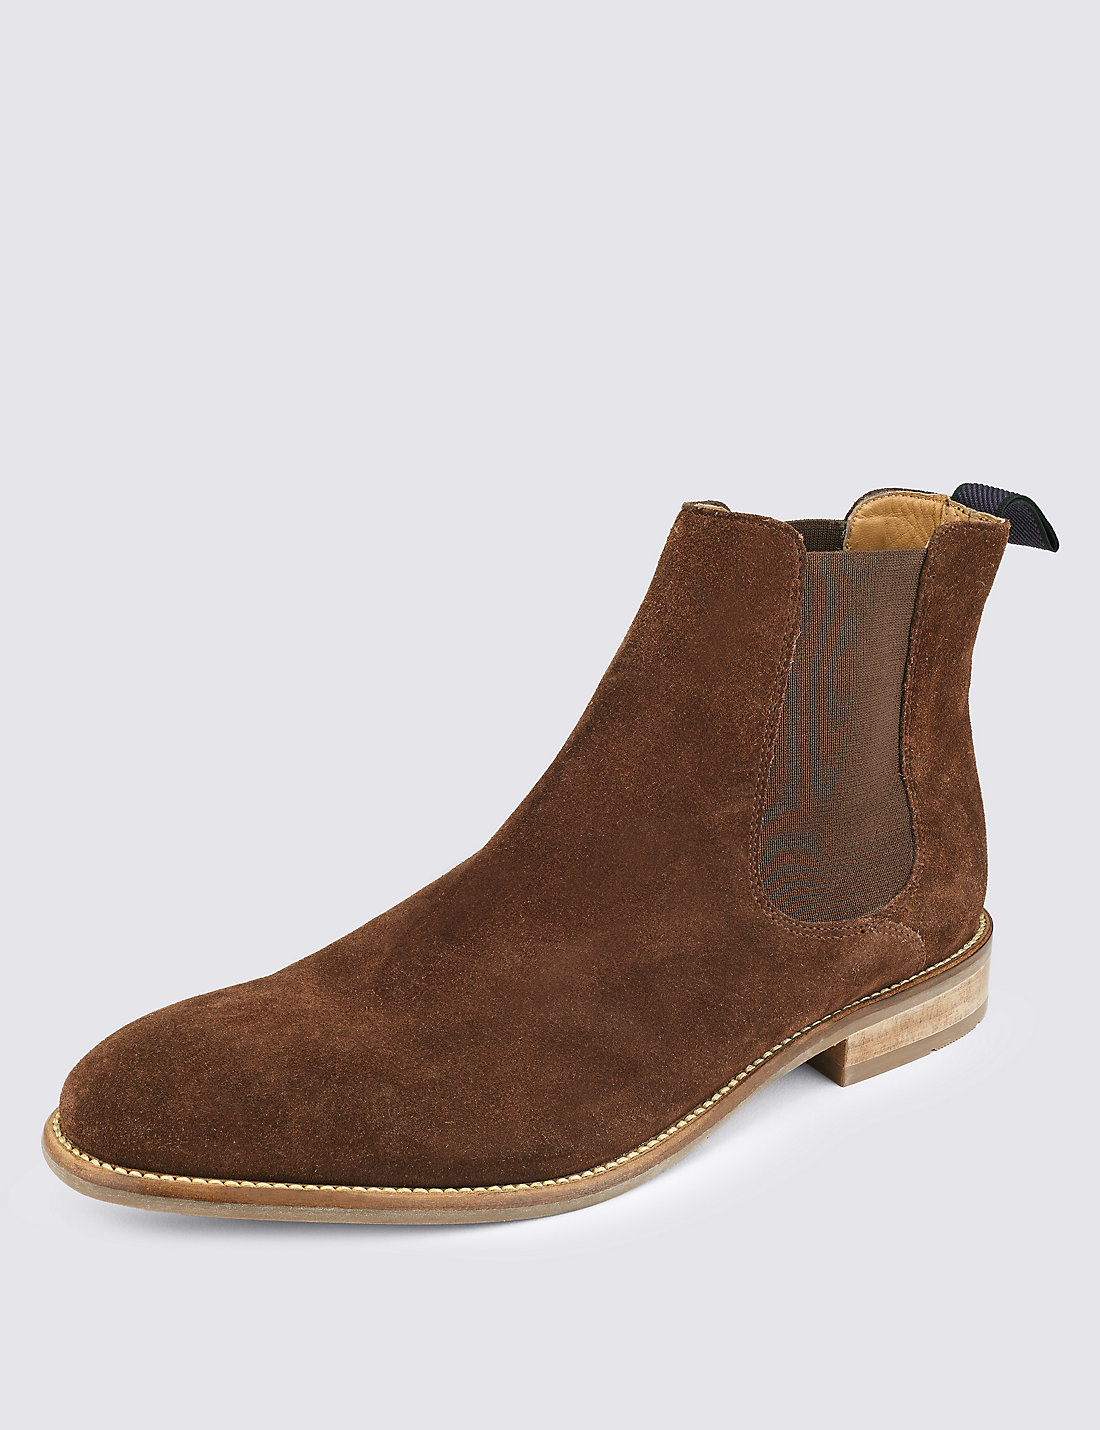 Mens Shoes & Boots | Chelsea Boots, Walking & Deck Shoes for Men | M&